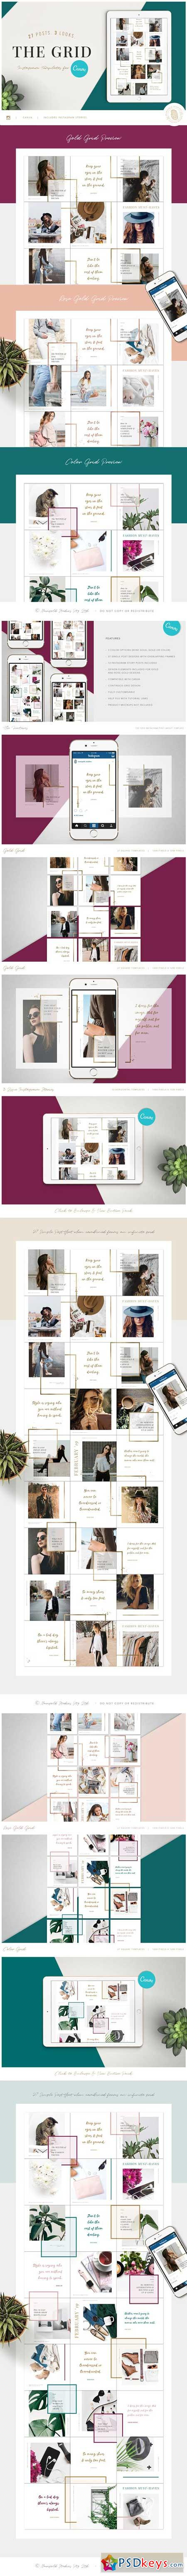 THE GRID for Canva 3325565